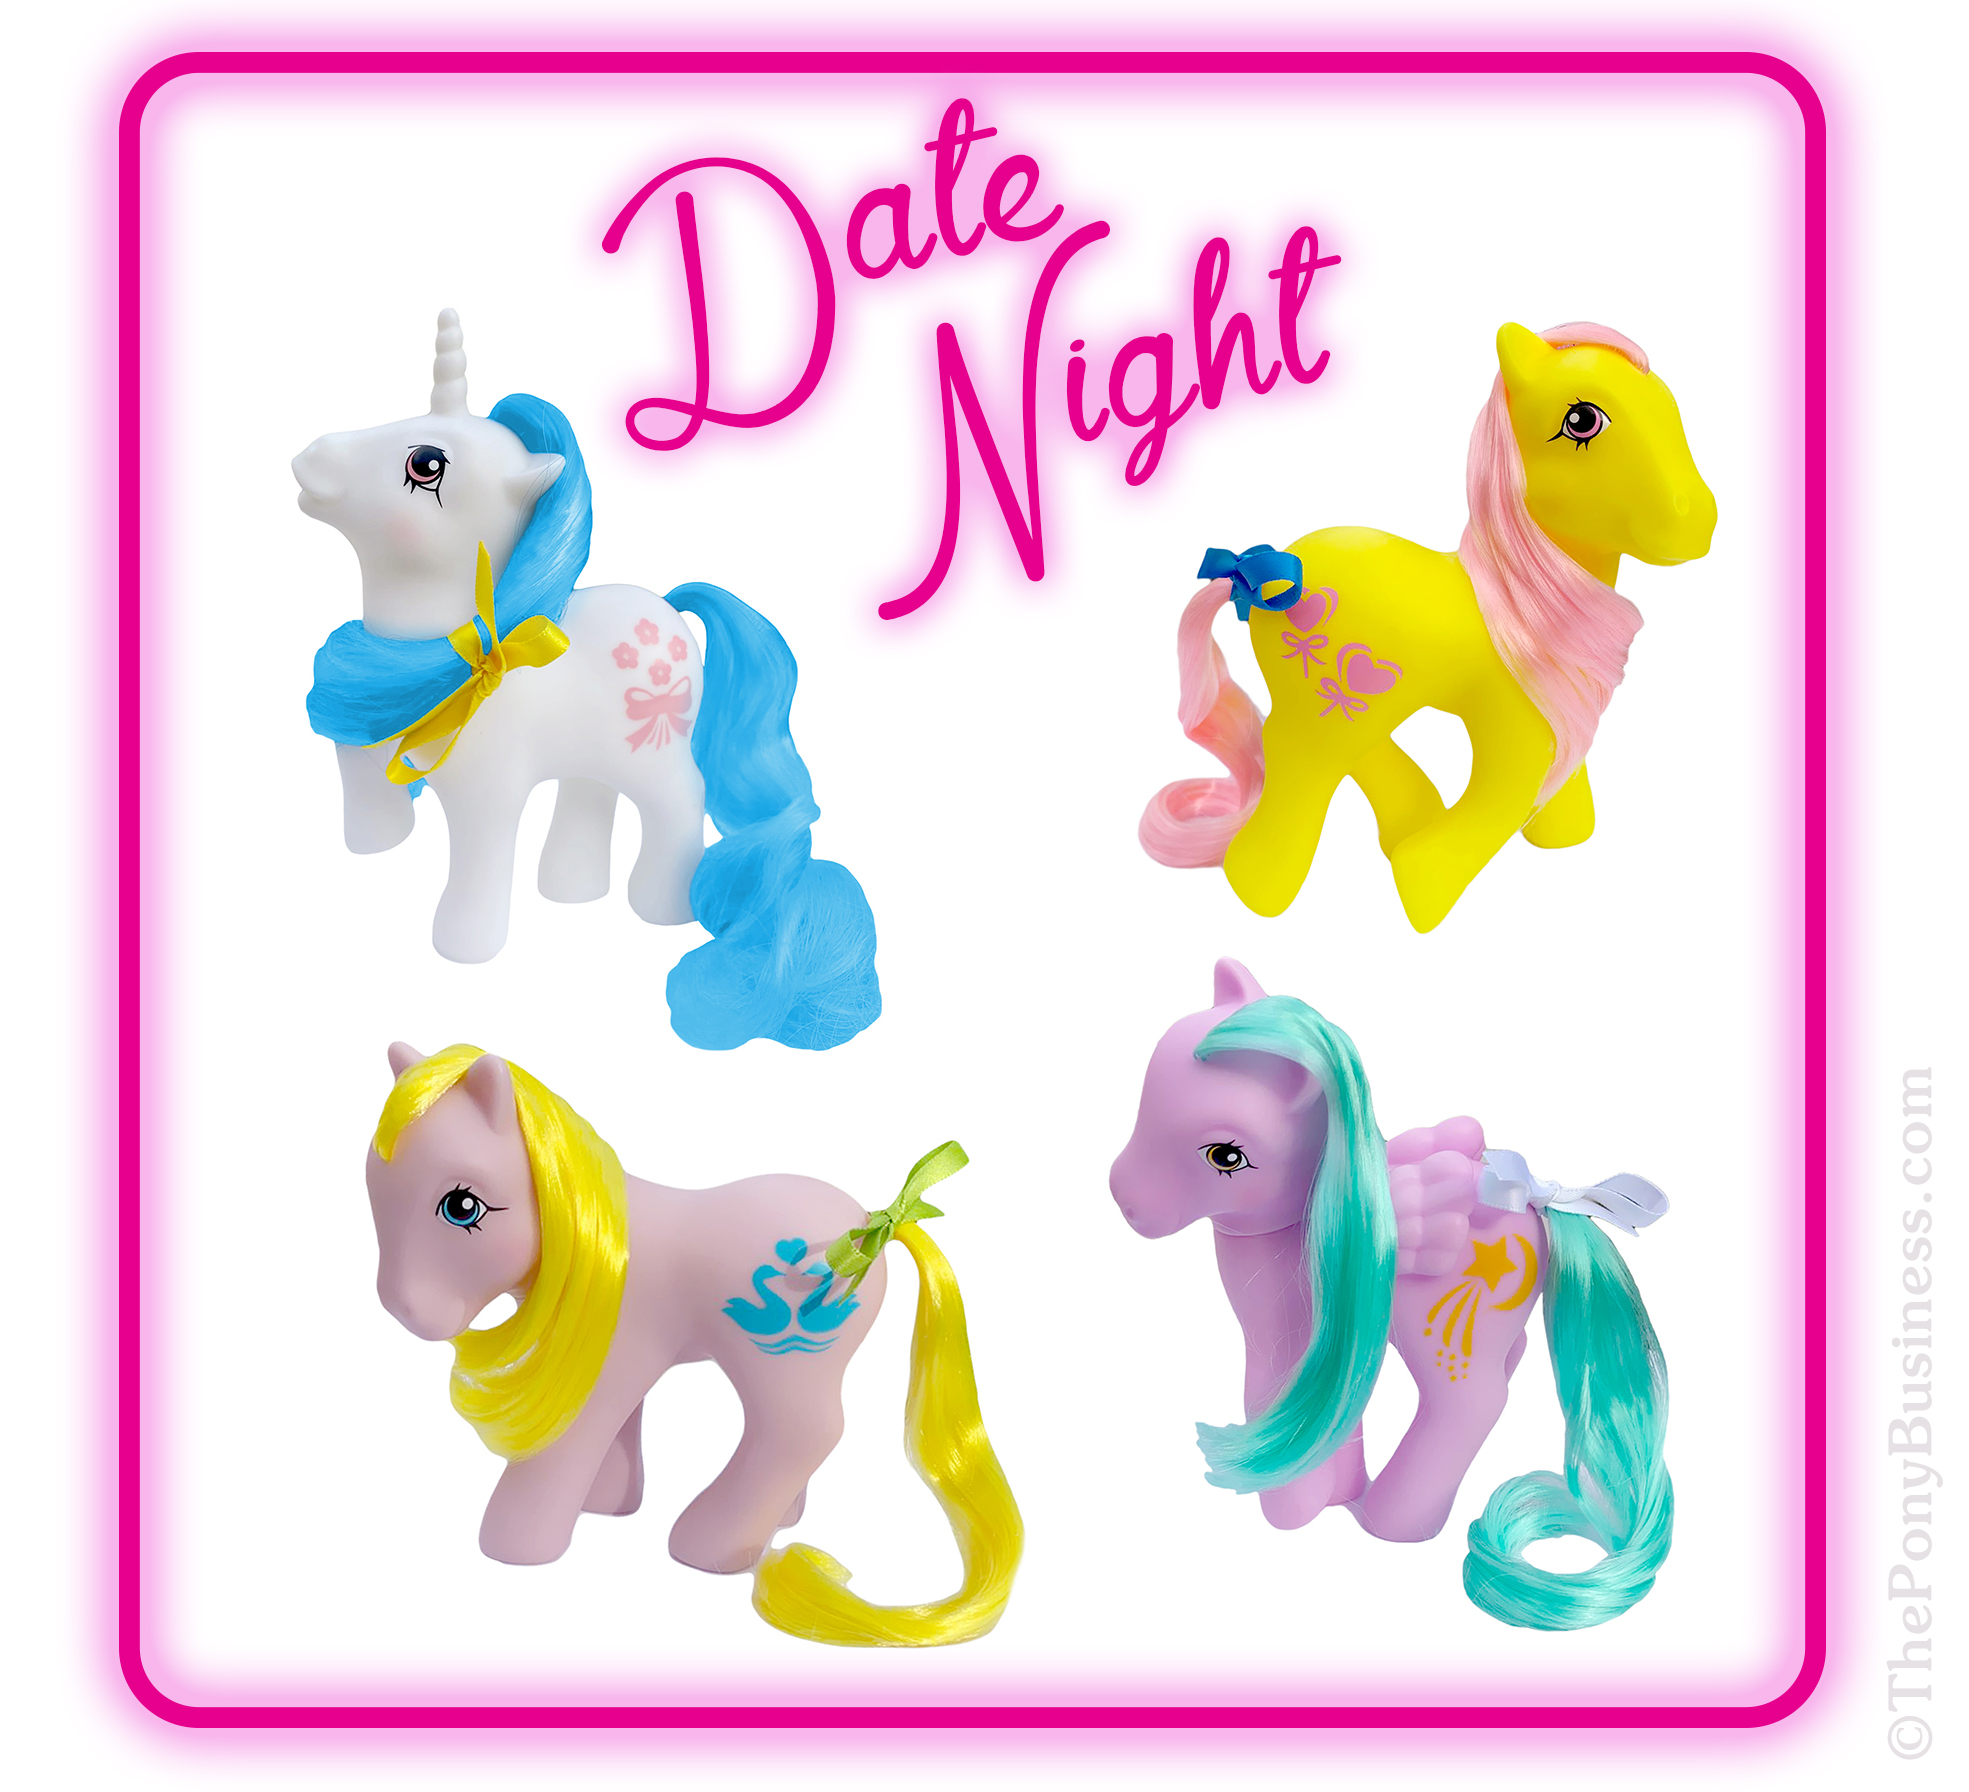 Europe / Date Night Bundle, Star Spangled DateNightBundle-ThePonyBusiness-2